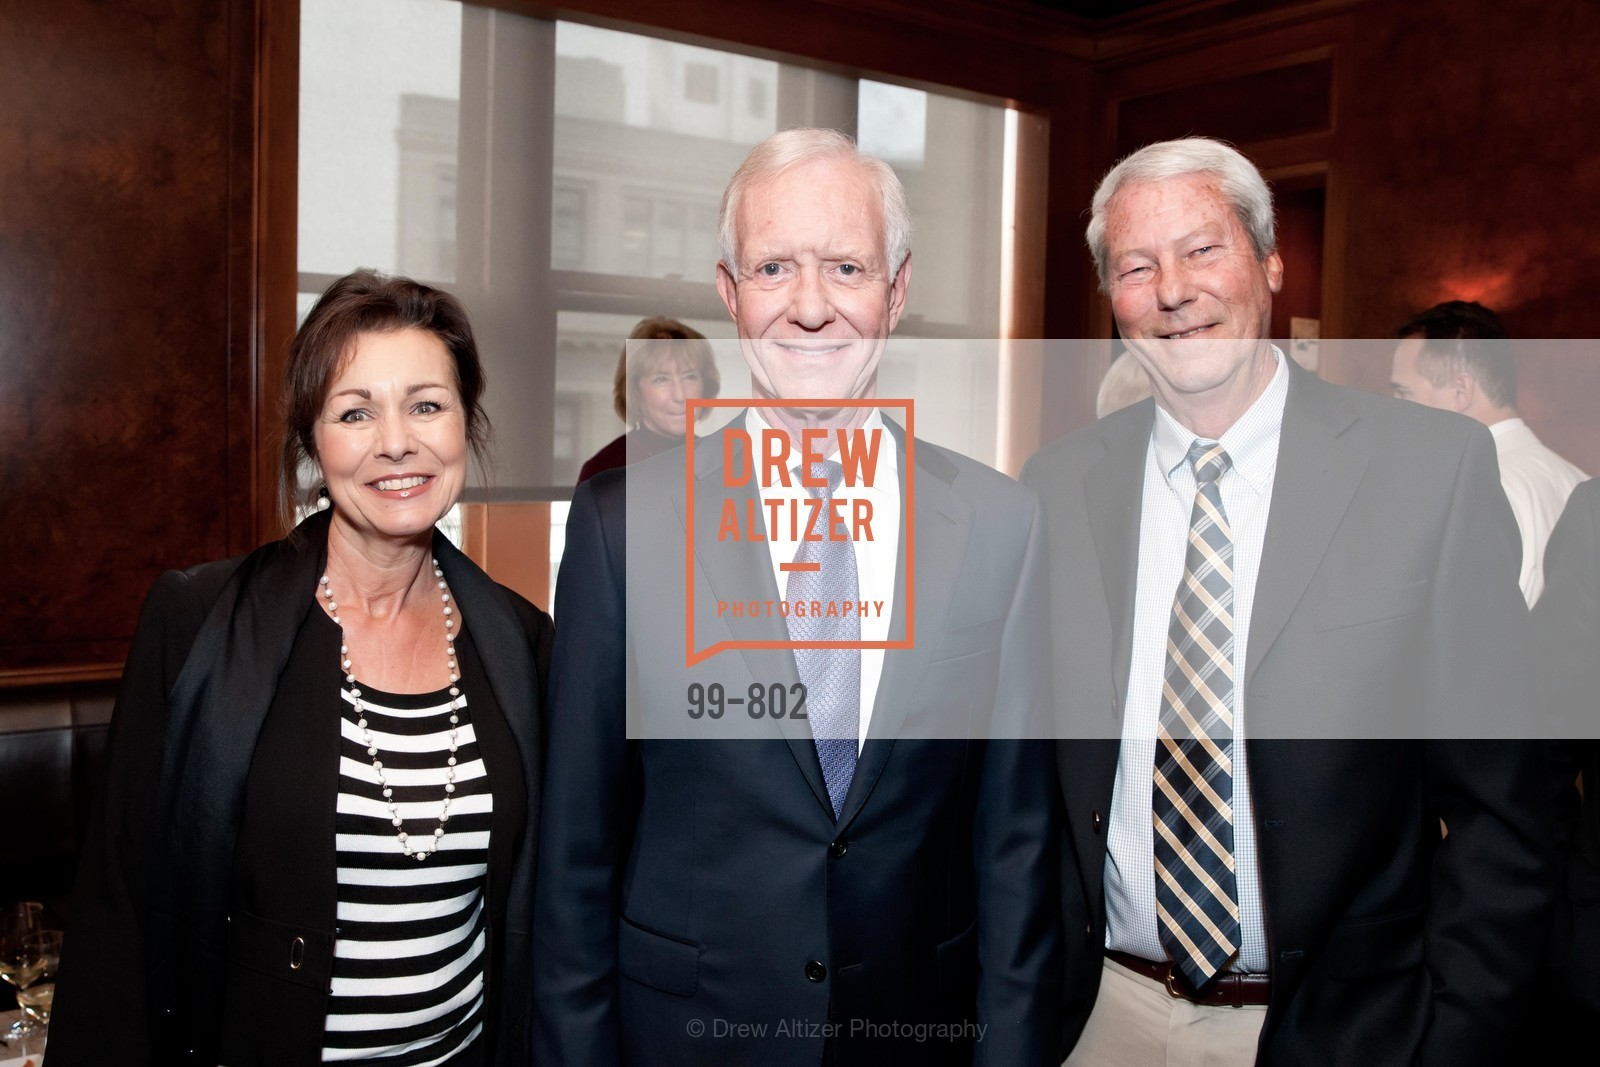 Sally Pierson, Sully Sullenberger, Tom Pierson, MR PORTER Celebrate The San Francisco Issue of The Journal, US, April 24th, 2015,Drew Altizer, Drew Altizer Photography, full-service agency, private events, San Francisco photographer, photographer california